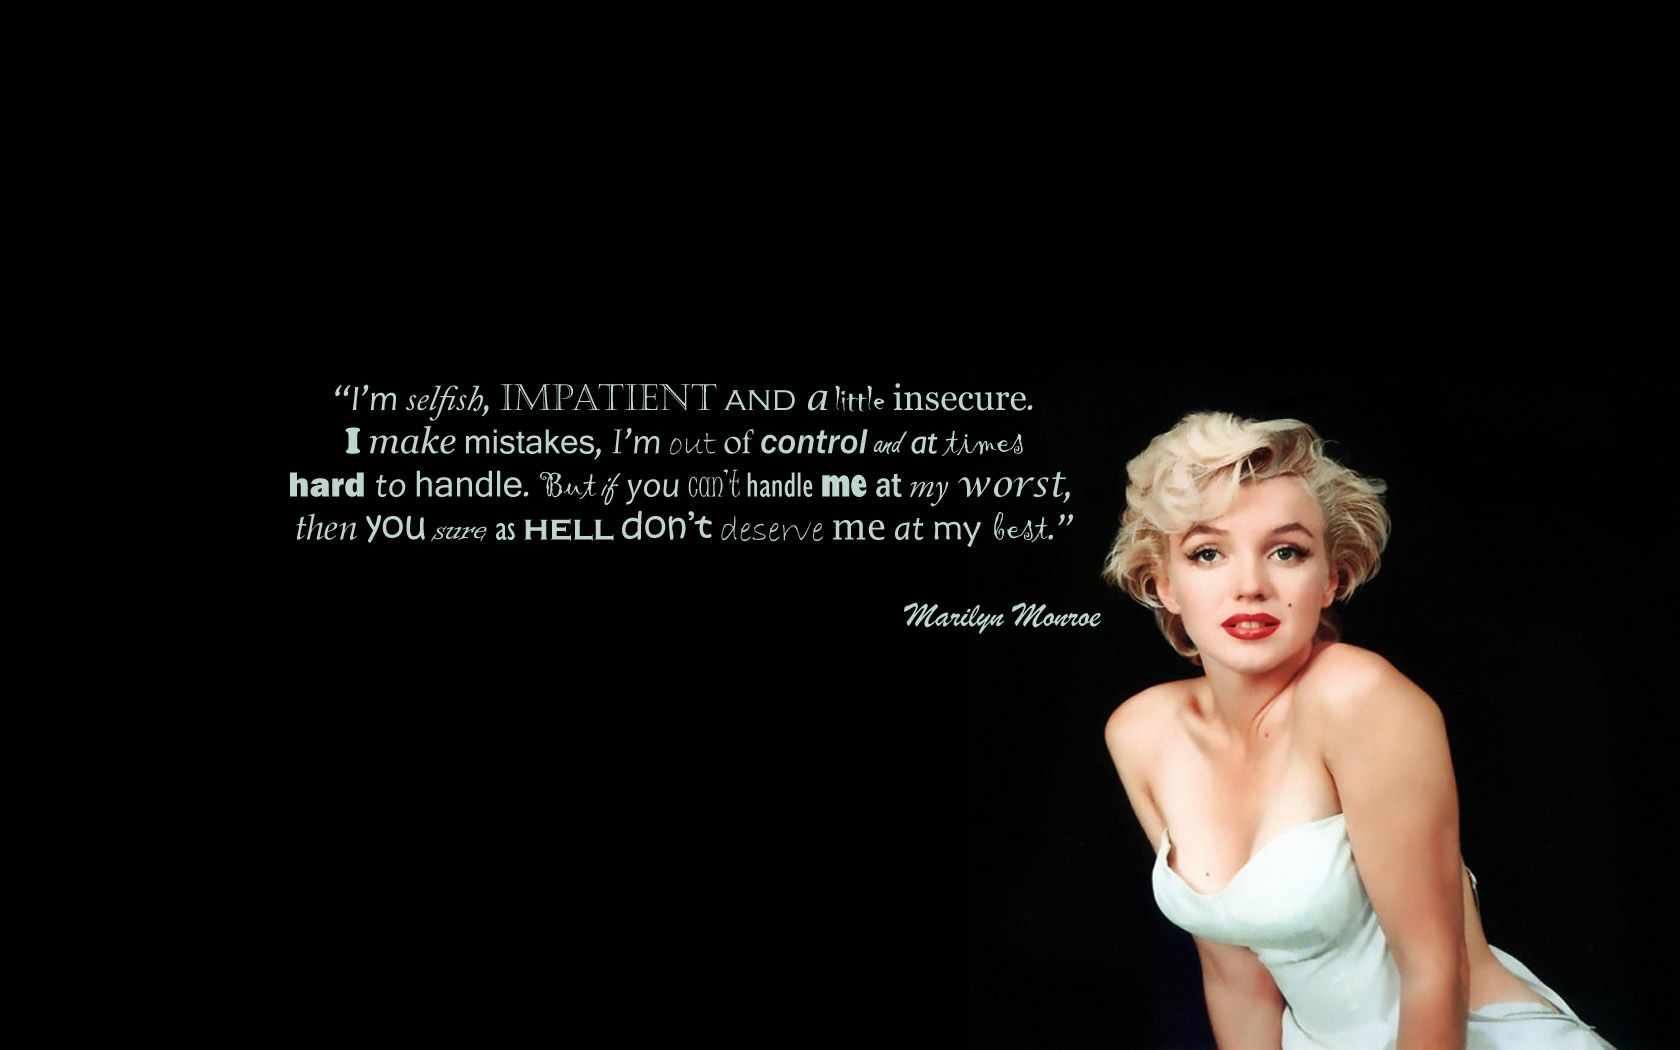 marilyn monroe quotes Marilyn Monroe Wallpaper Quotes